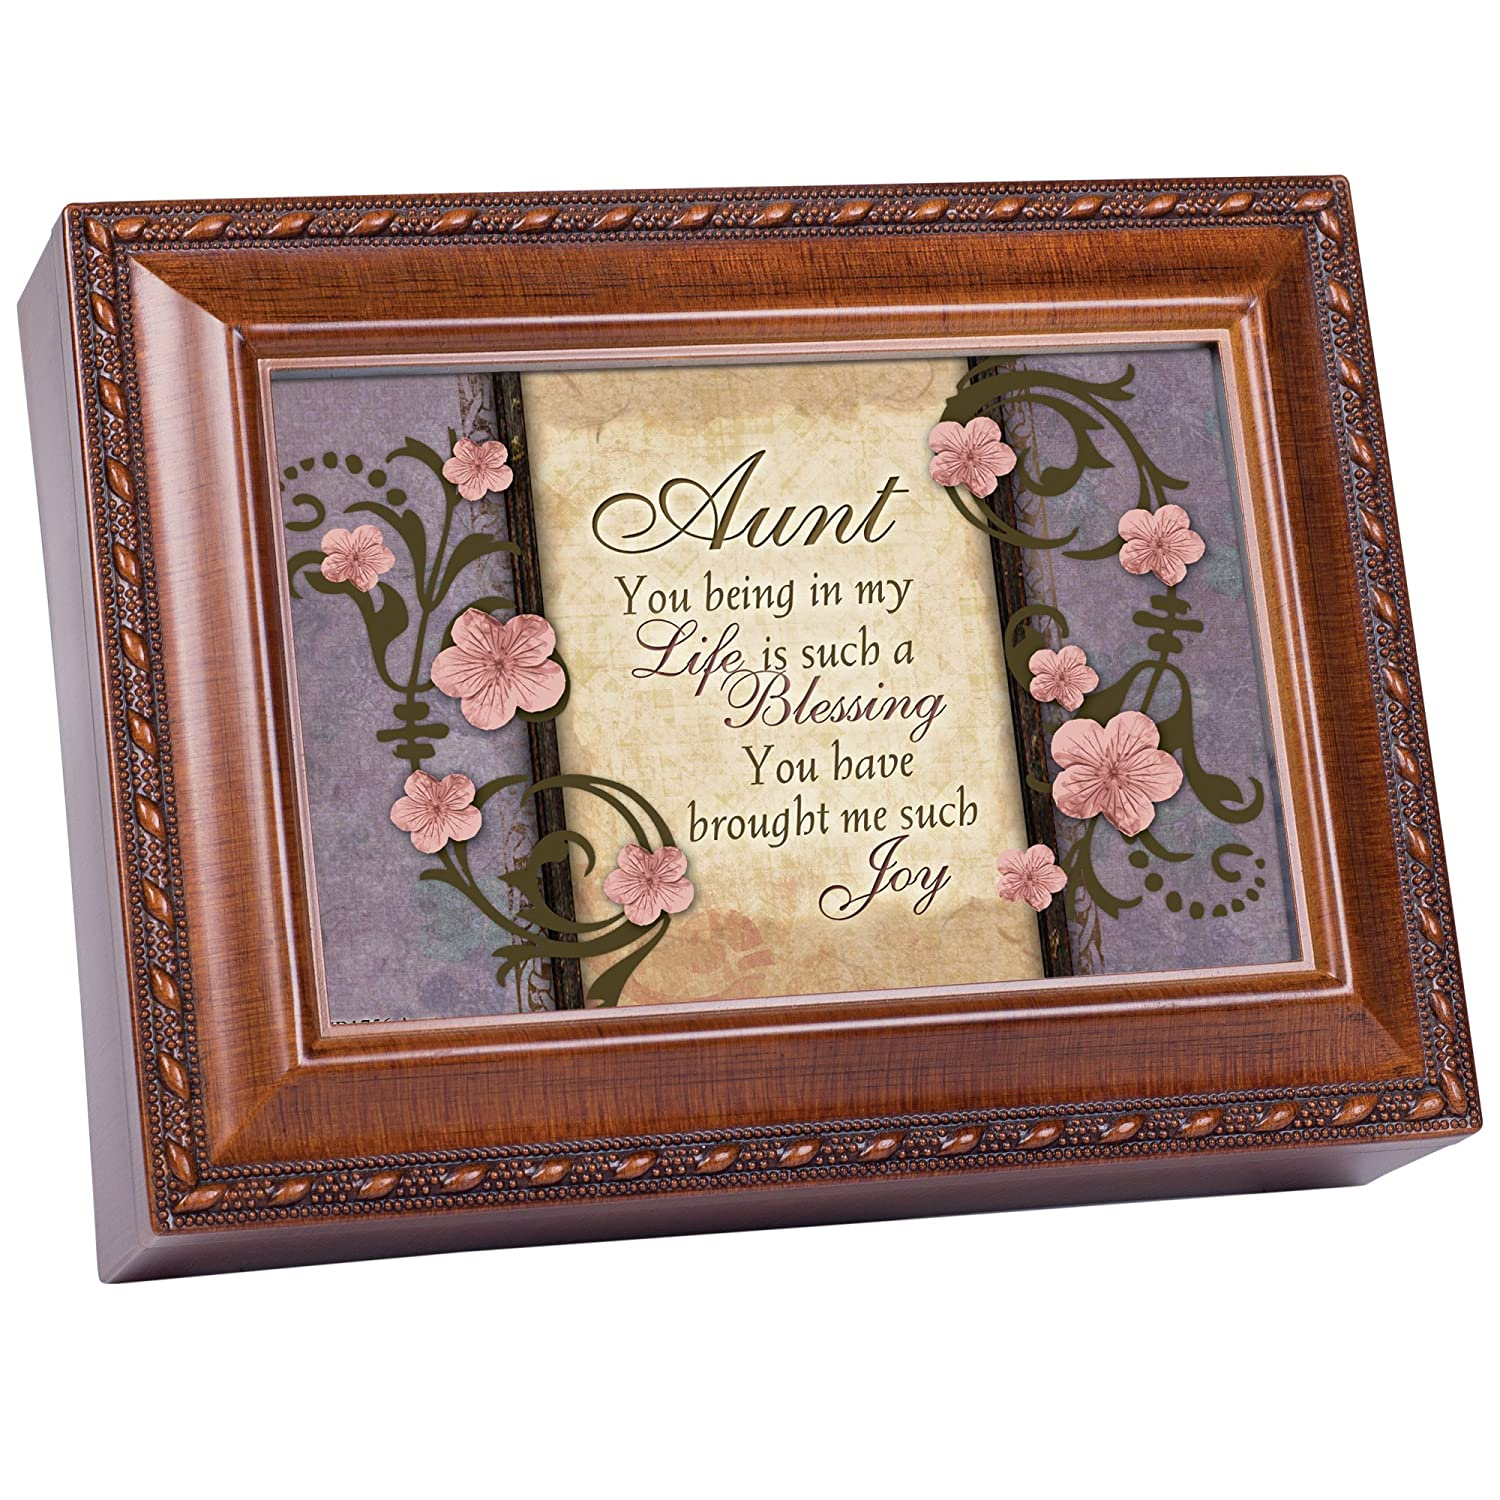 Cottage Garden Aunt Woodgrain Traditional Music Box Plays Wind Beneath My Wings MB1756